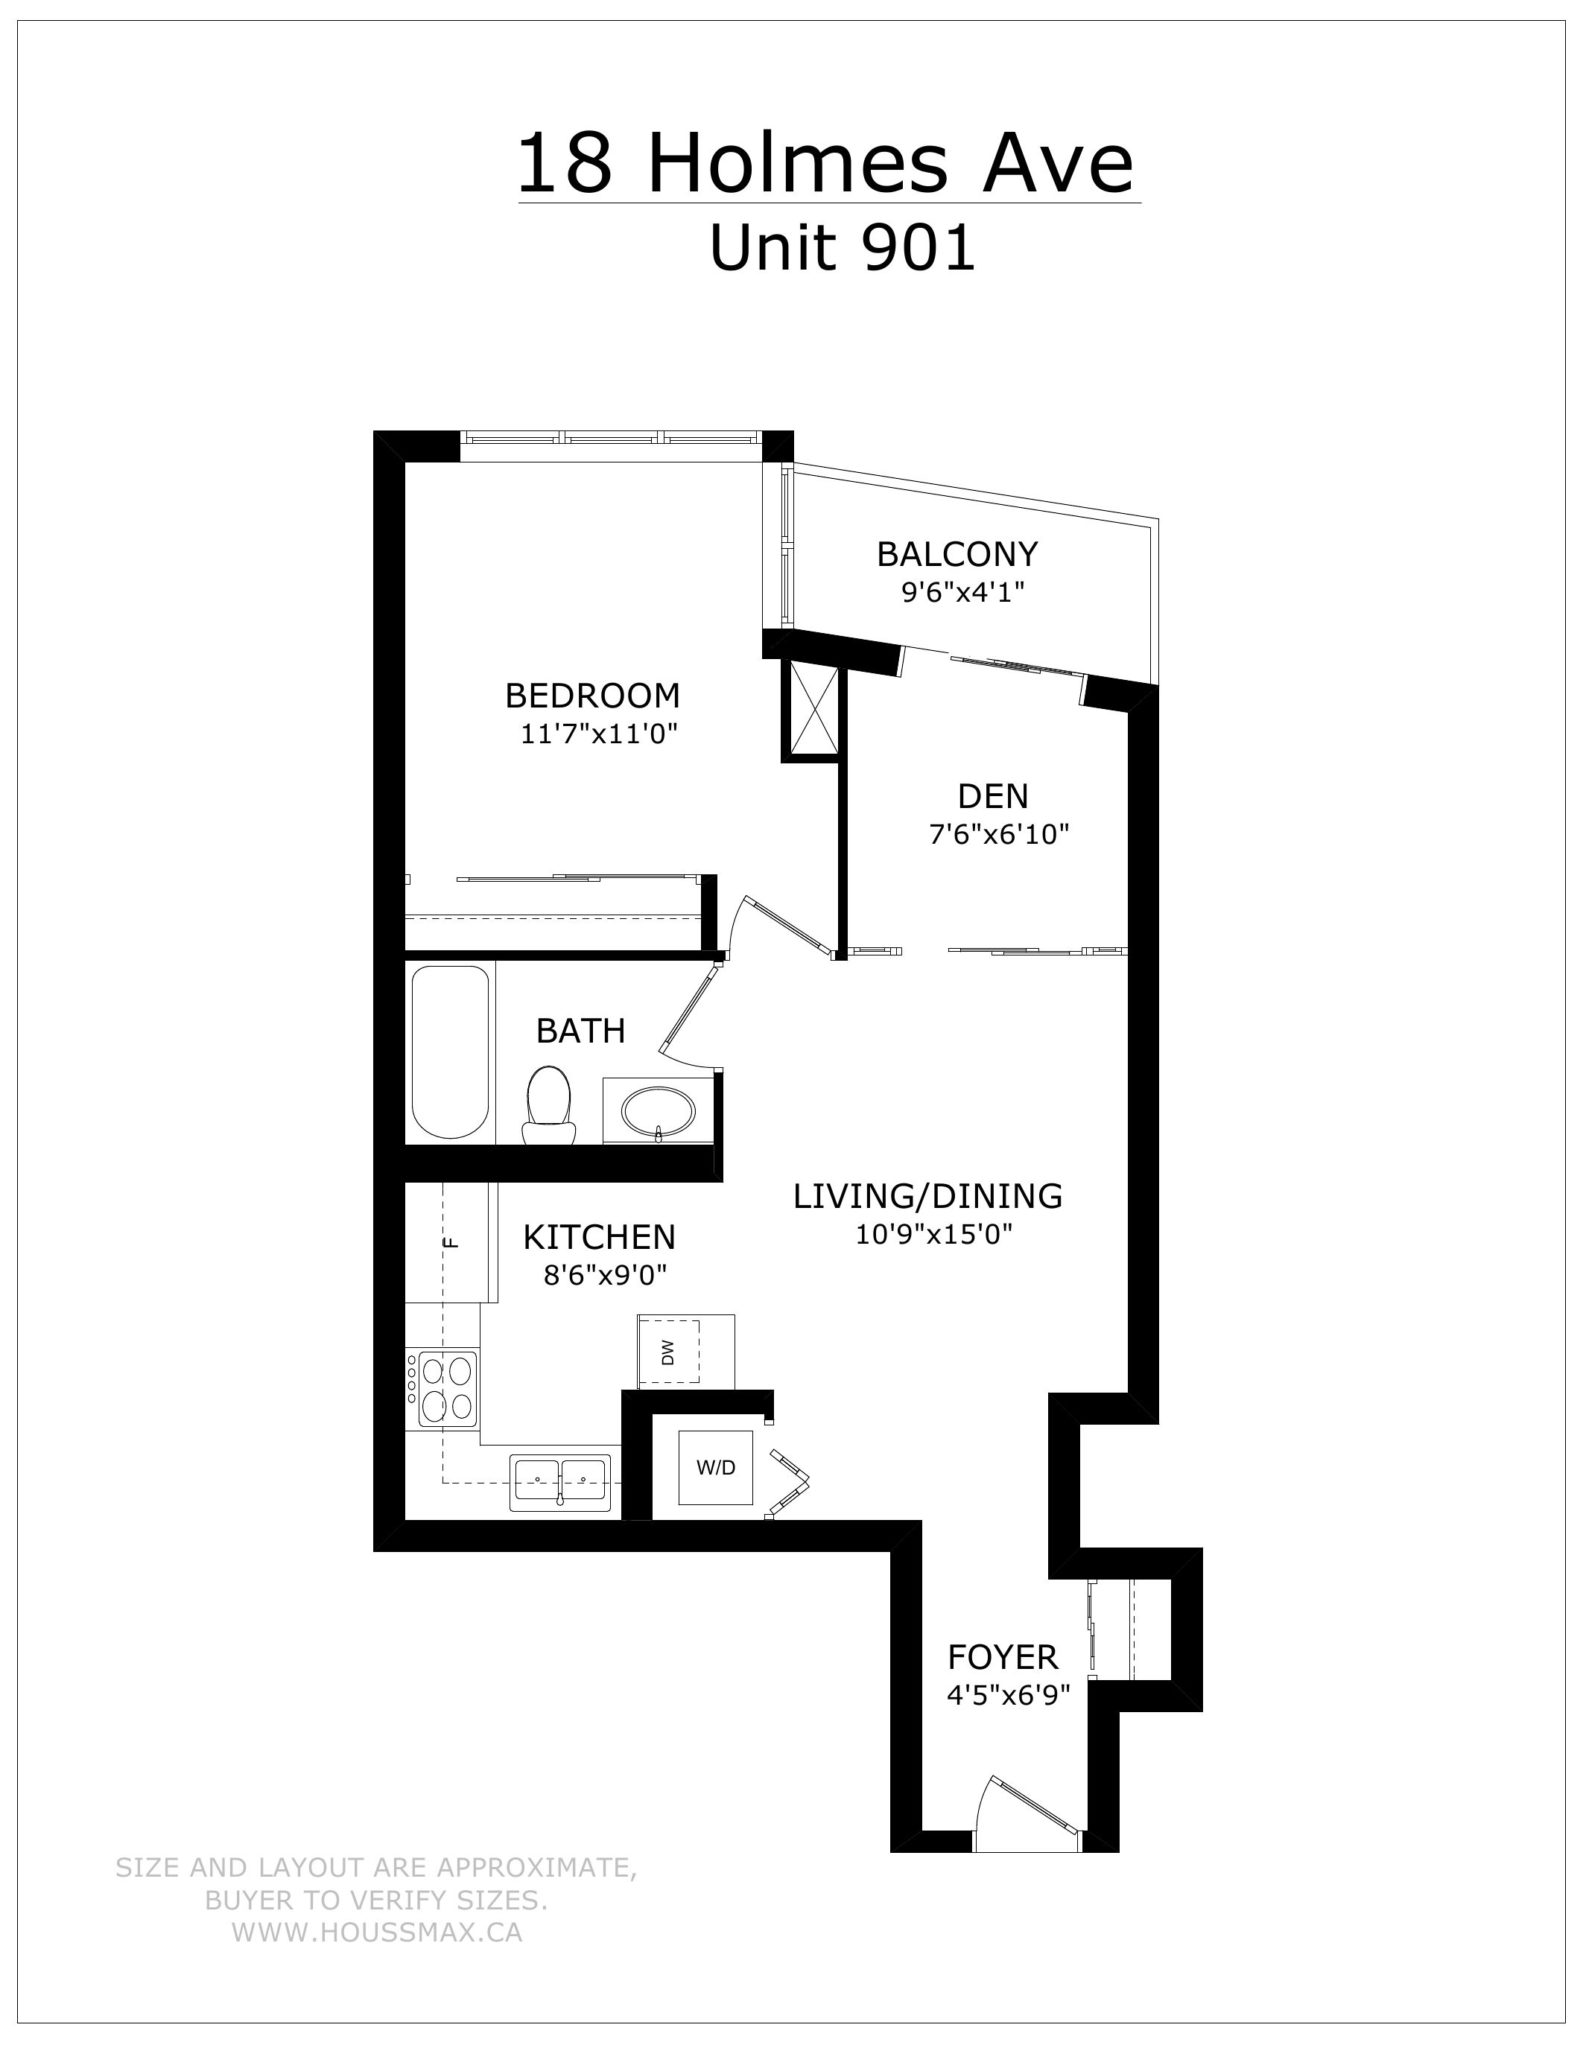 Floors plans and layout for 18 Holmes Avenue Unit 901